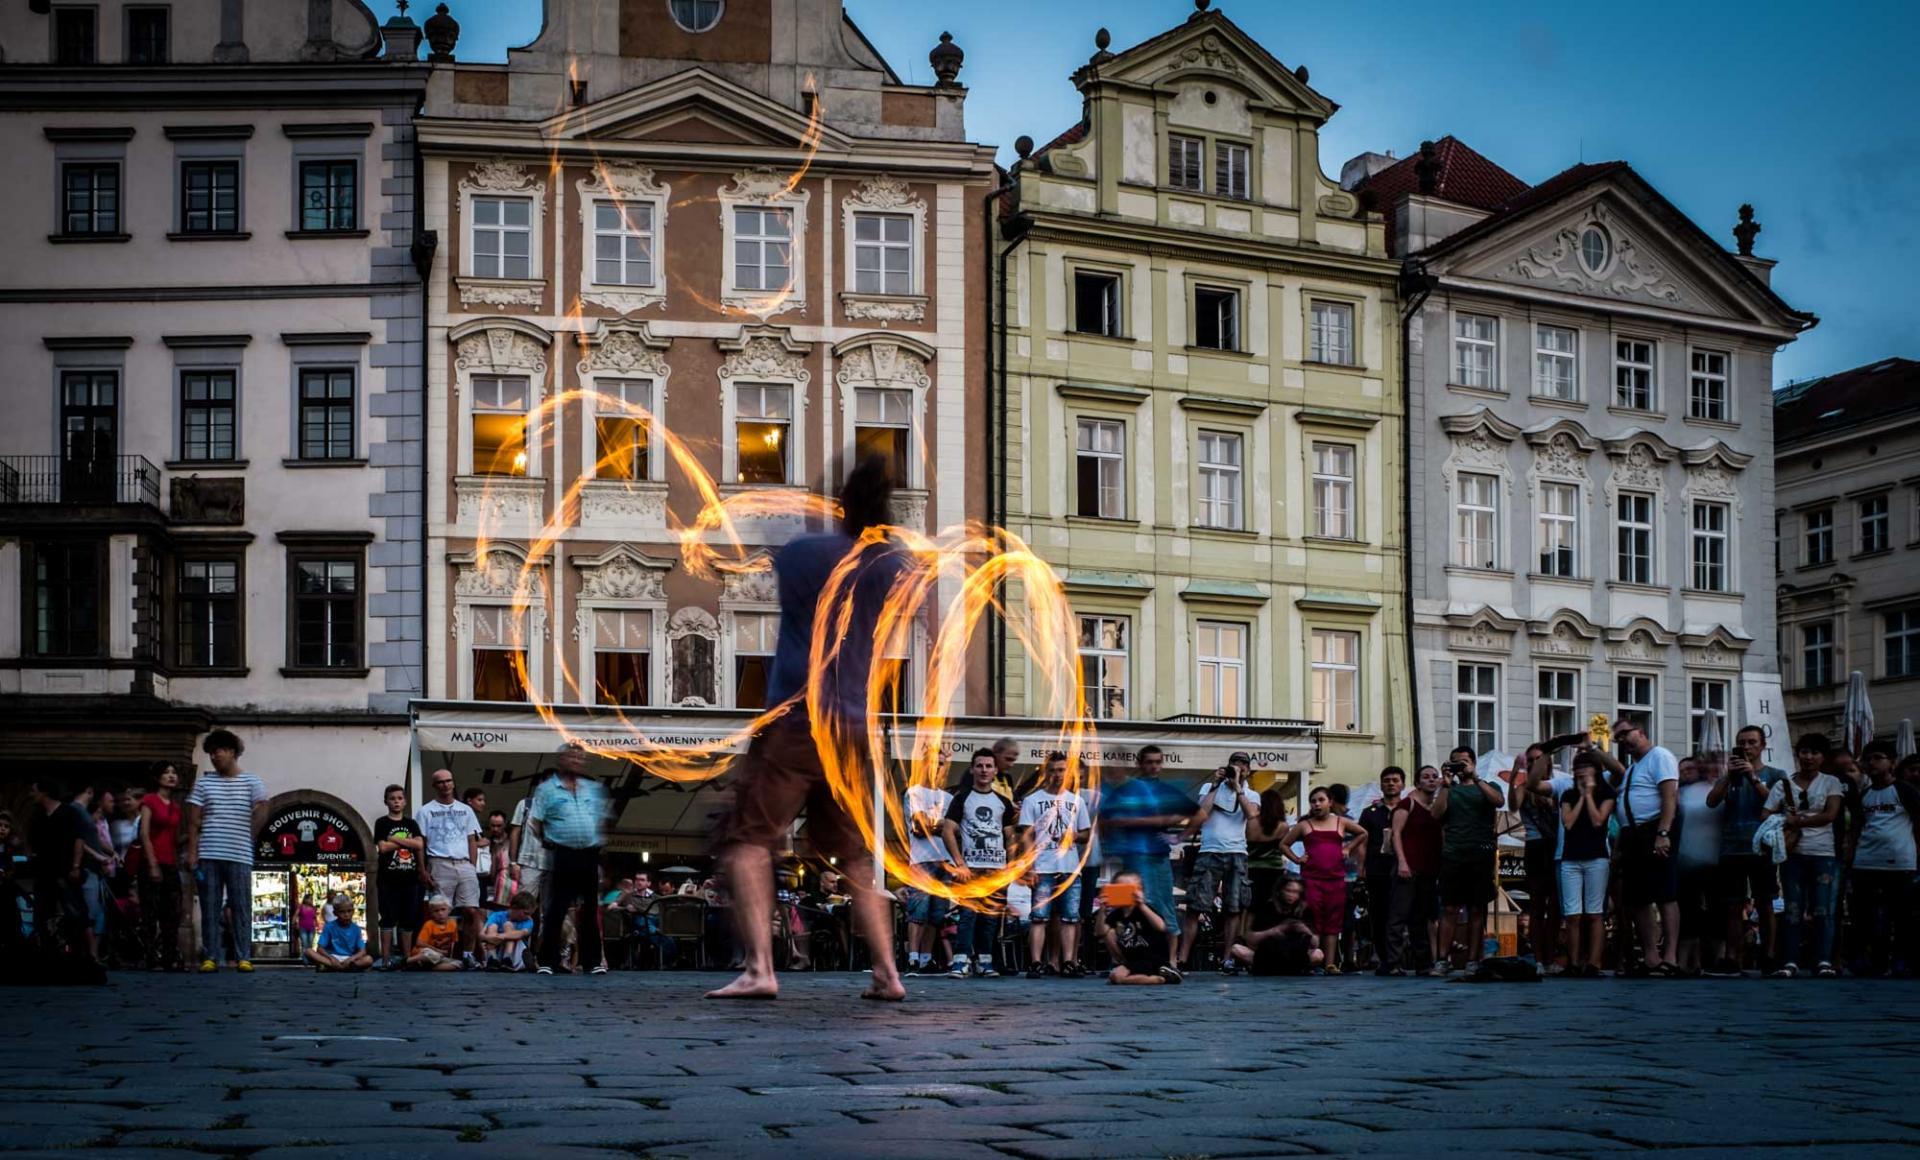 Performers in Old Town Square in Prague, Czech Republic